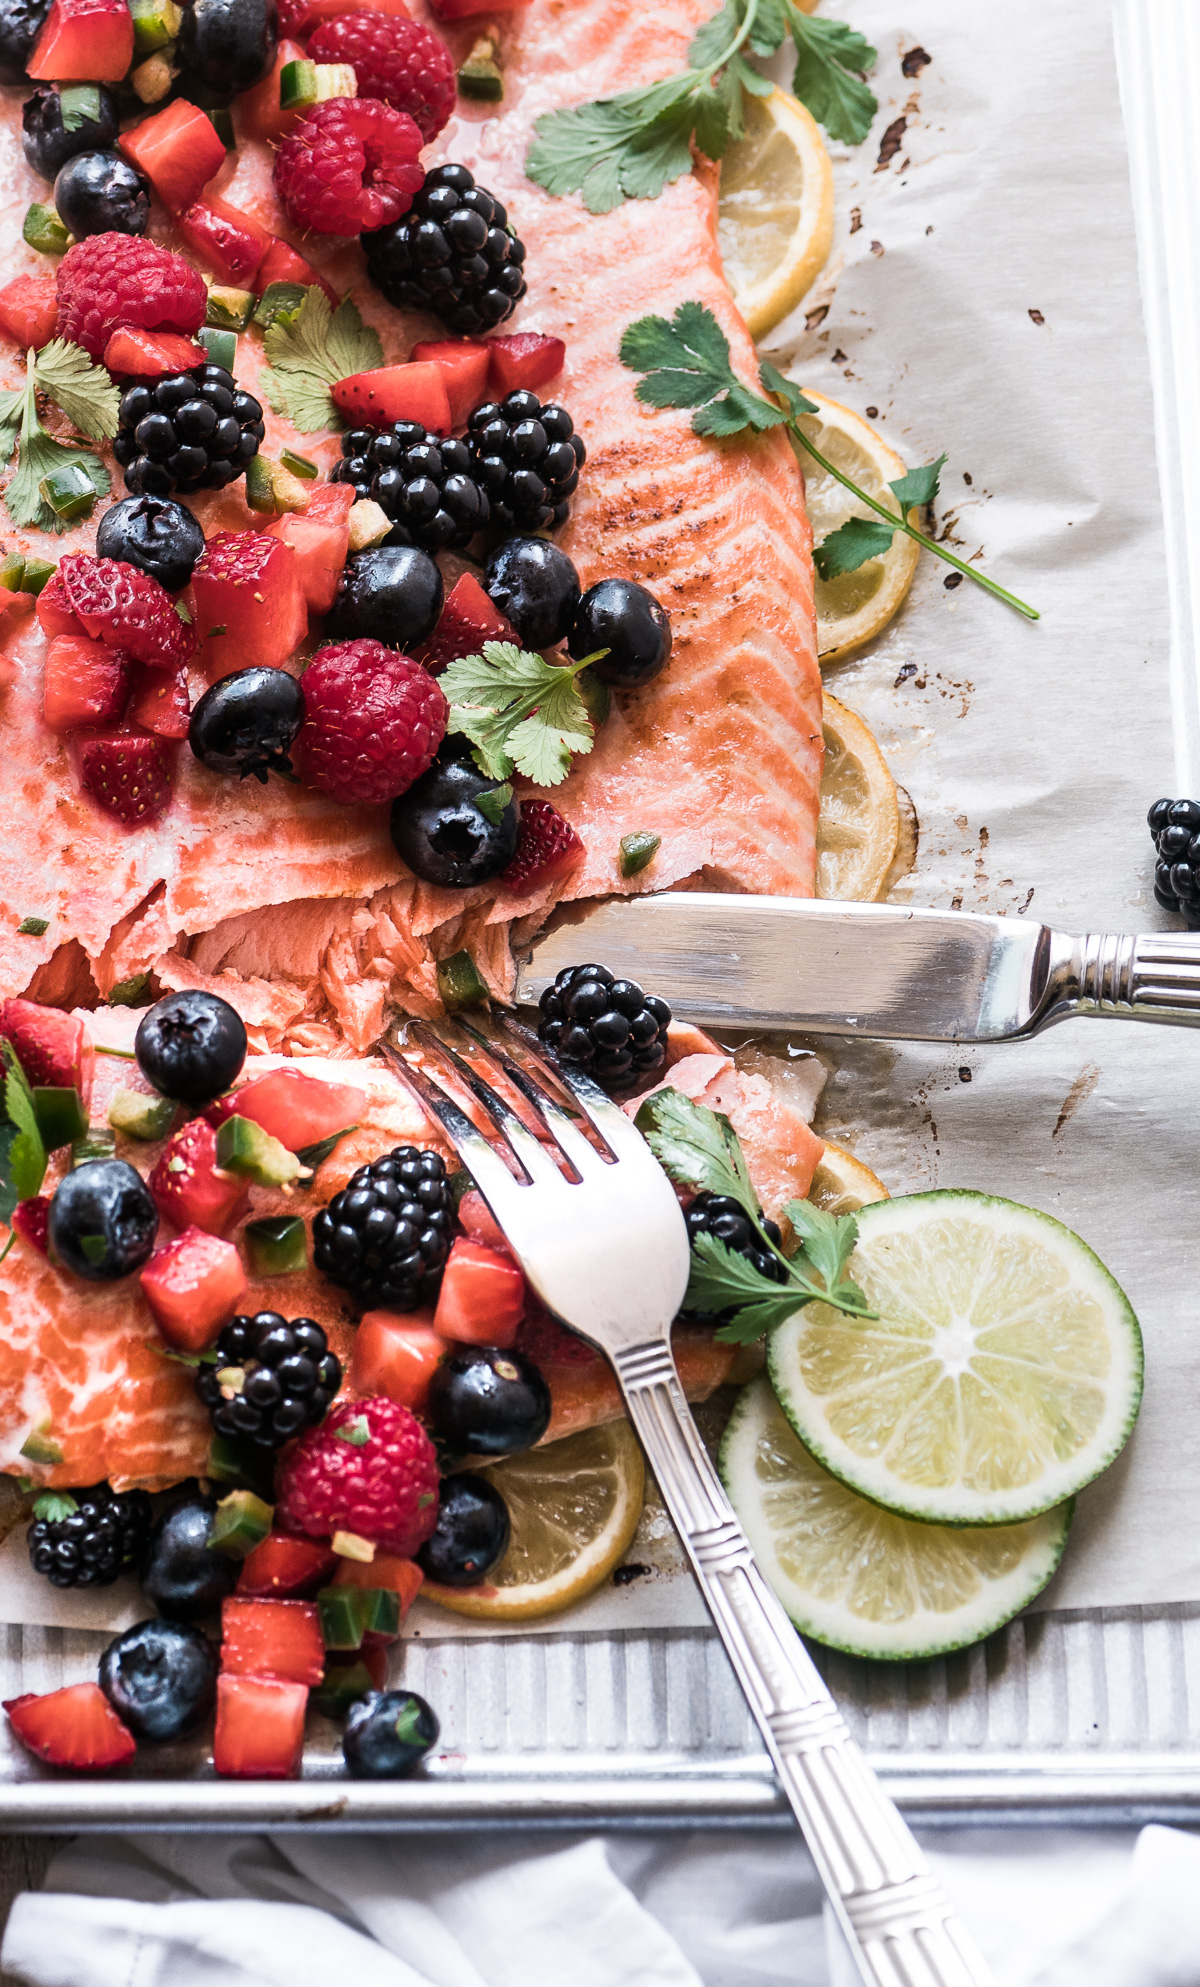 Cutting into a salmon with berry salsa